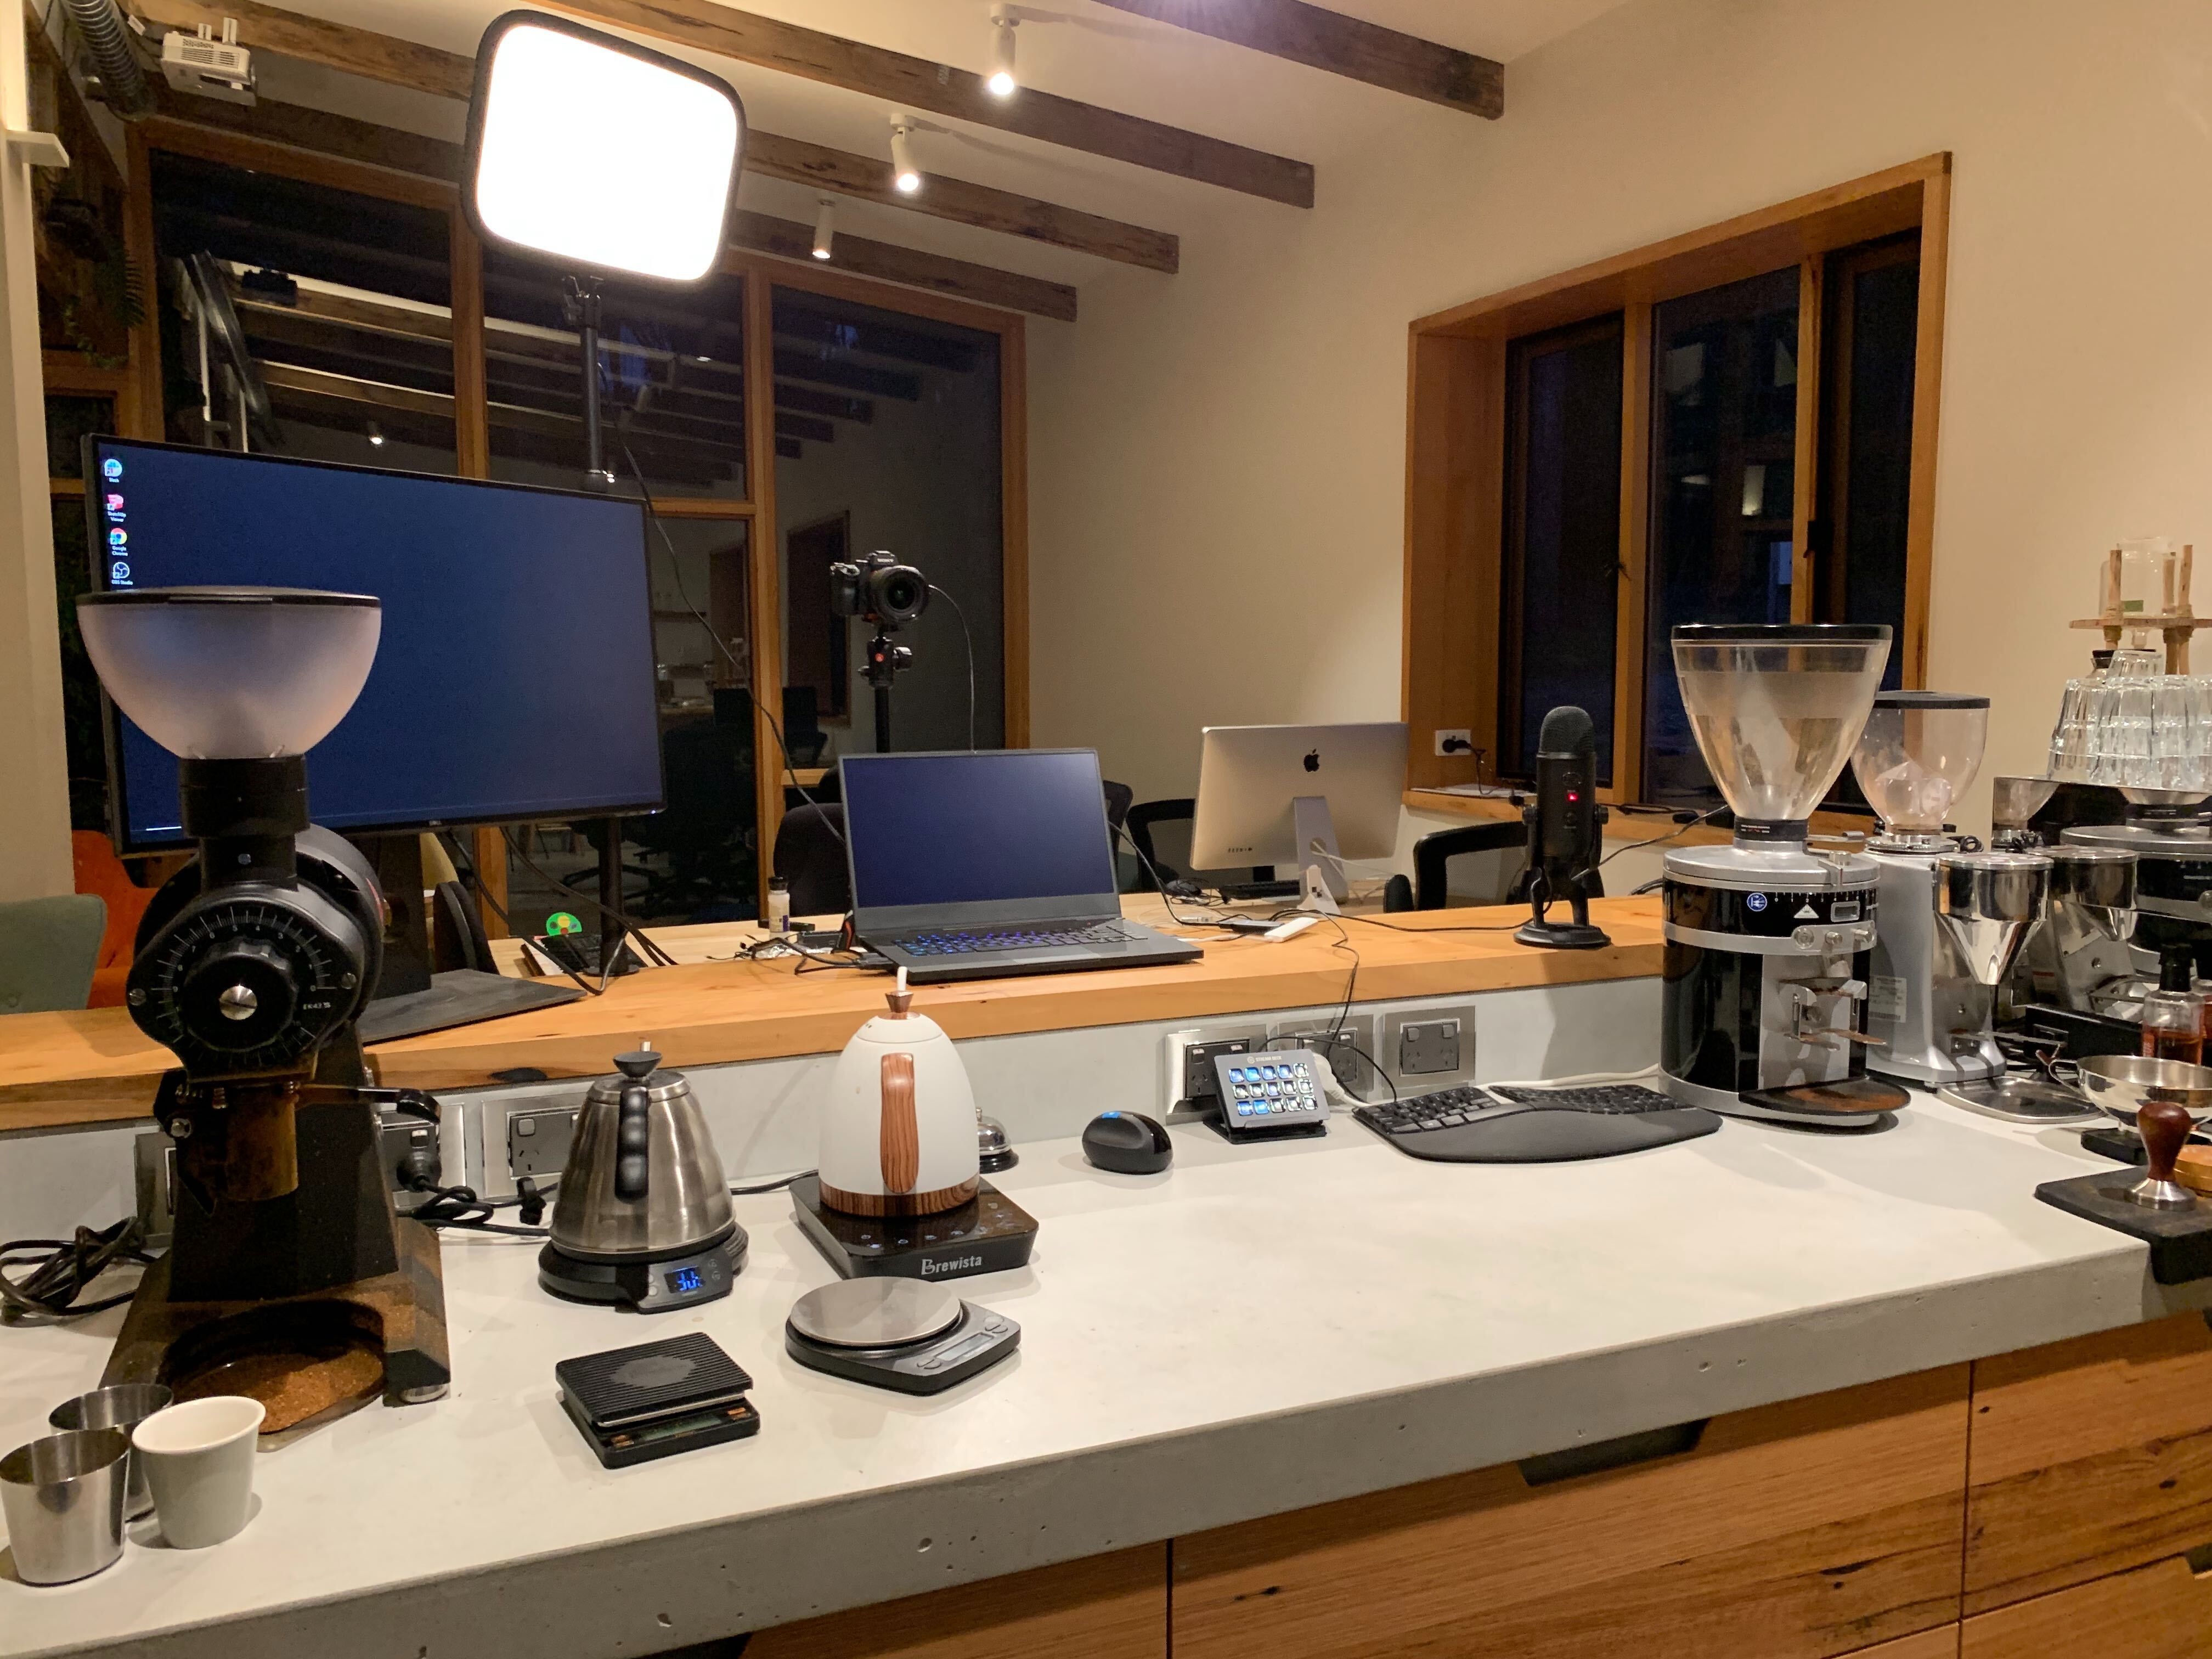 Joel's coffee bar set up at night, featuring all his coffee making tools and broadcast equipment